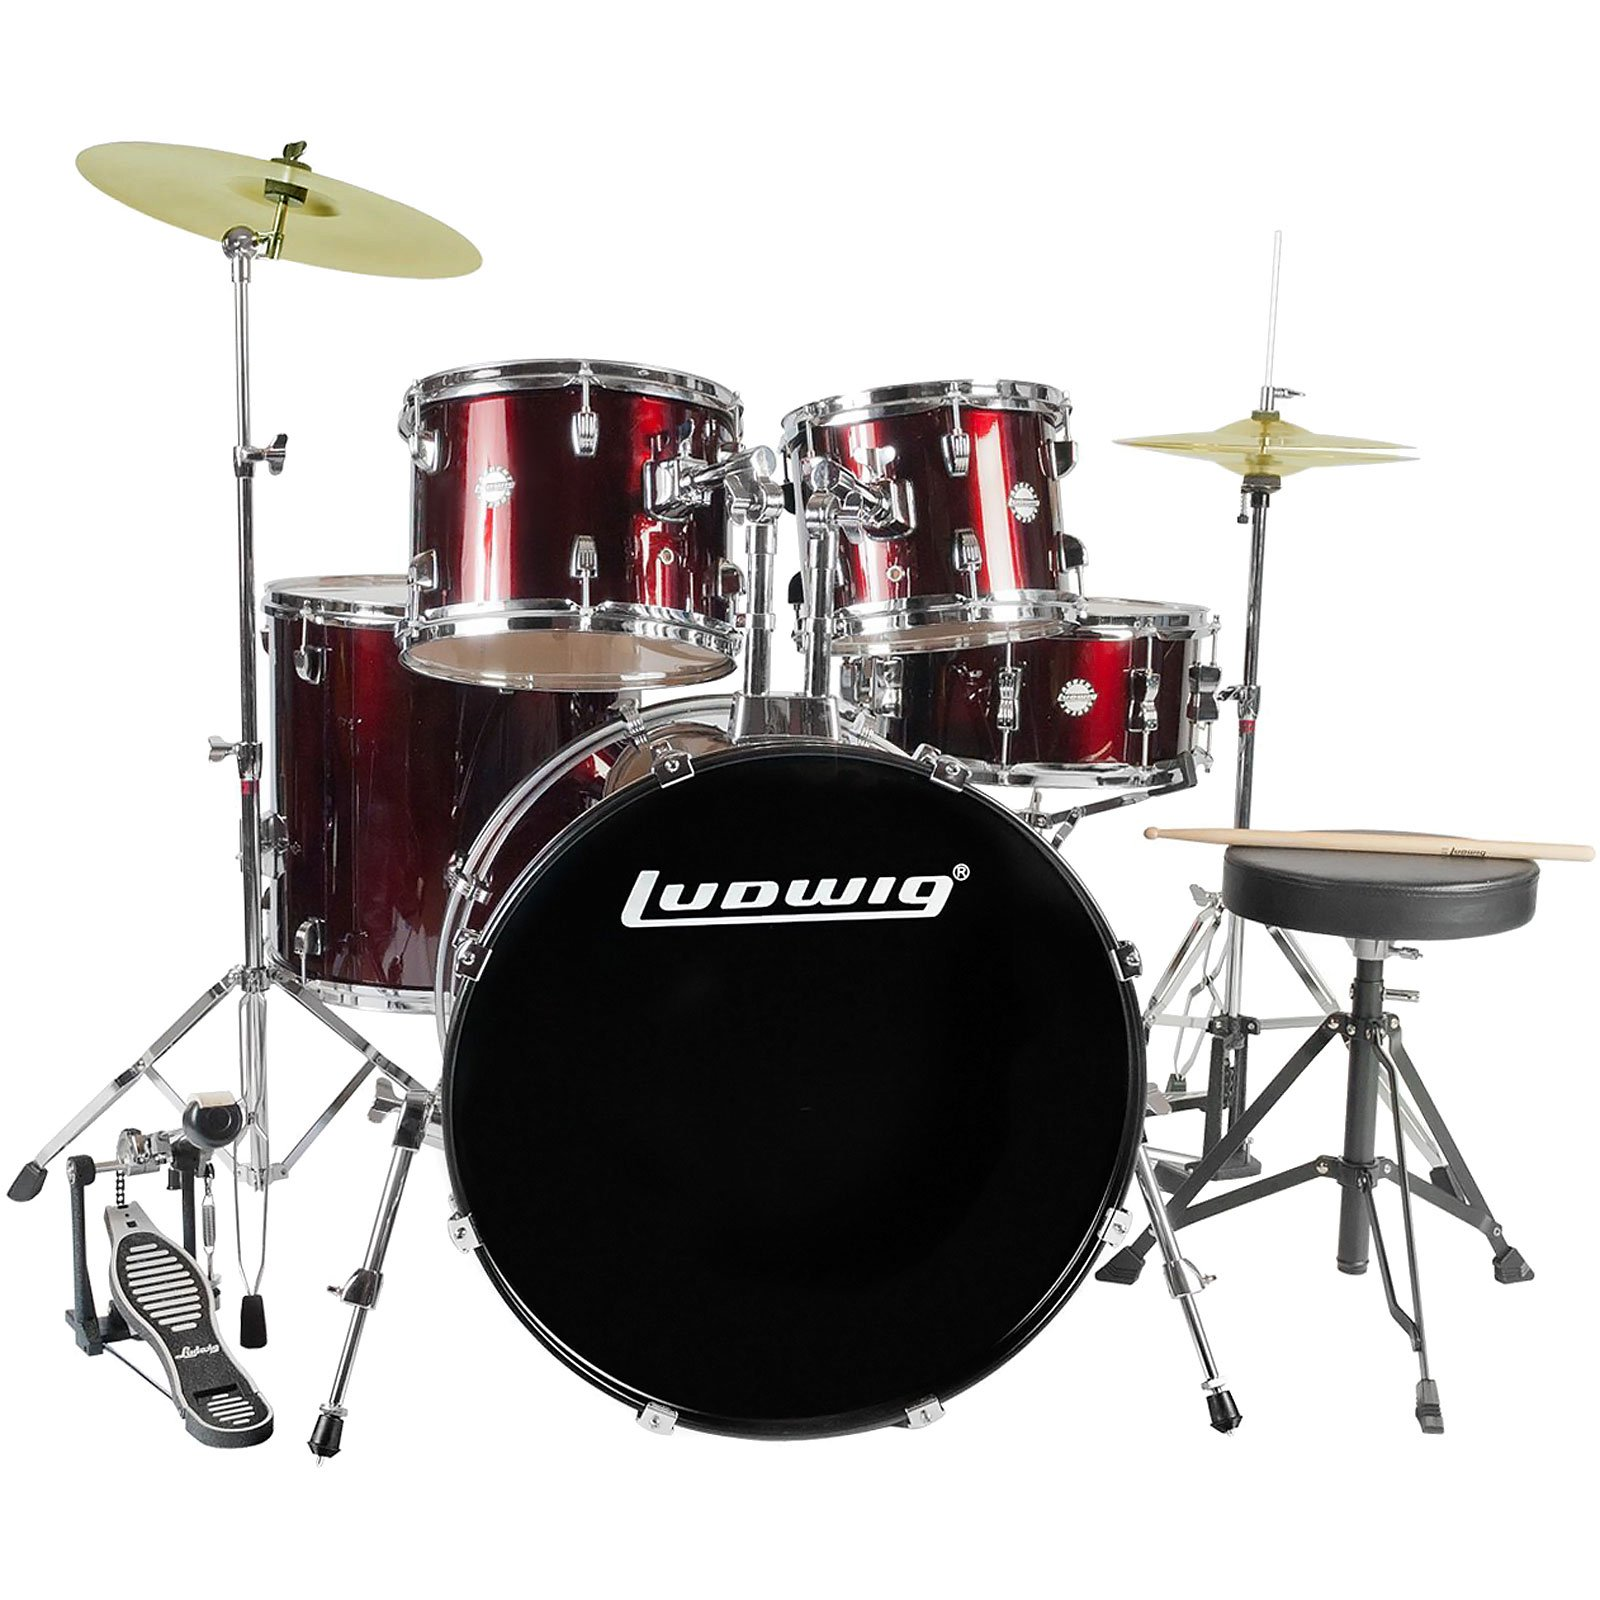 Ludwig Accent Drive 5-Pc Drum Set, Red Foil - Includes: Hardware, Throne, Pedal, Cymbals, Sticks & Drumheads by Ludwig